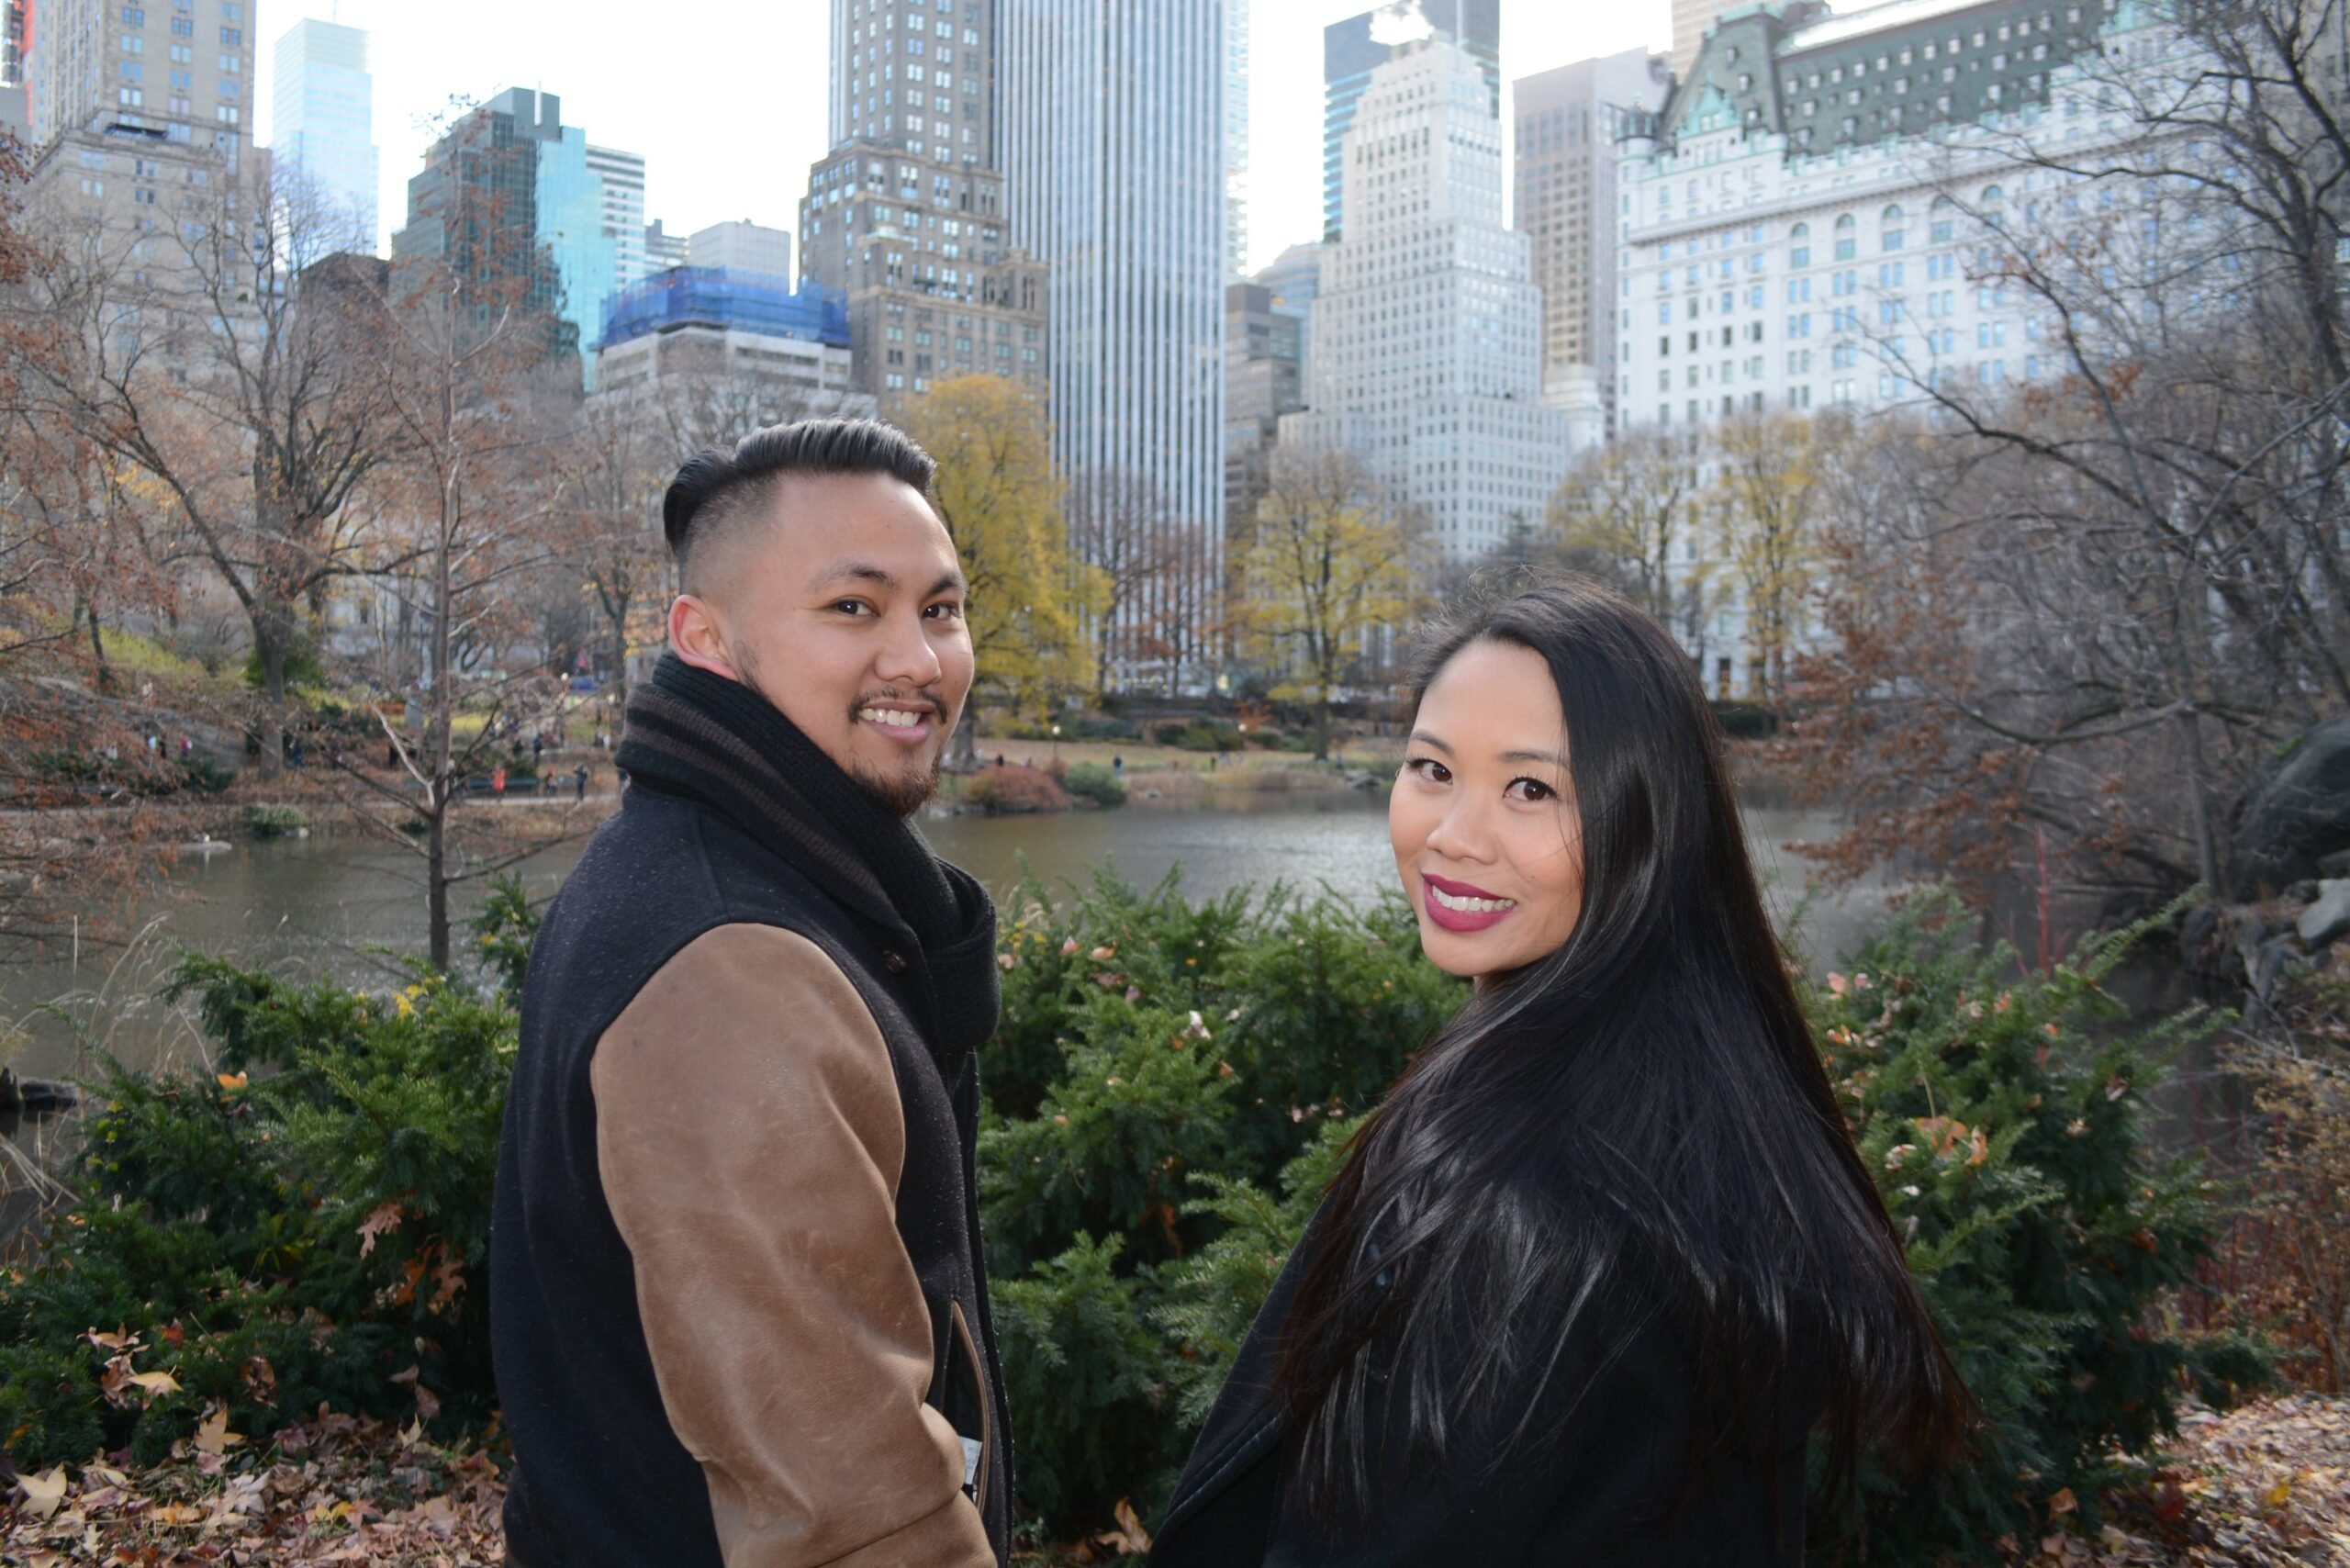 Romantic NYC walking Tour in Central Park